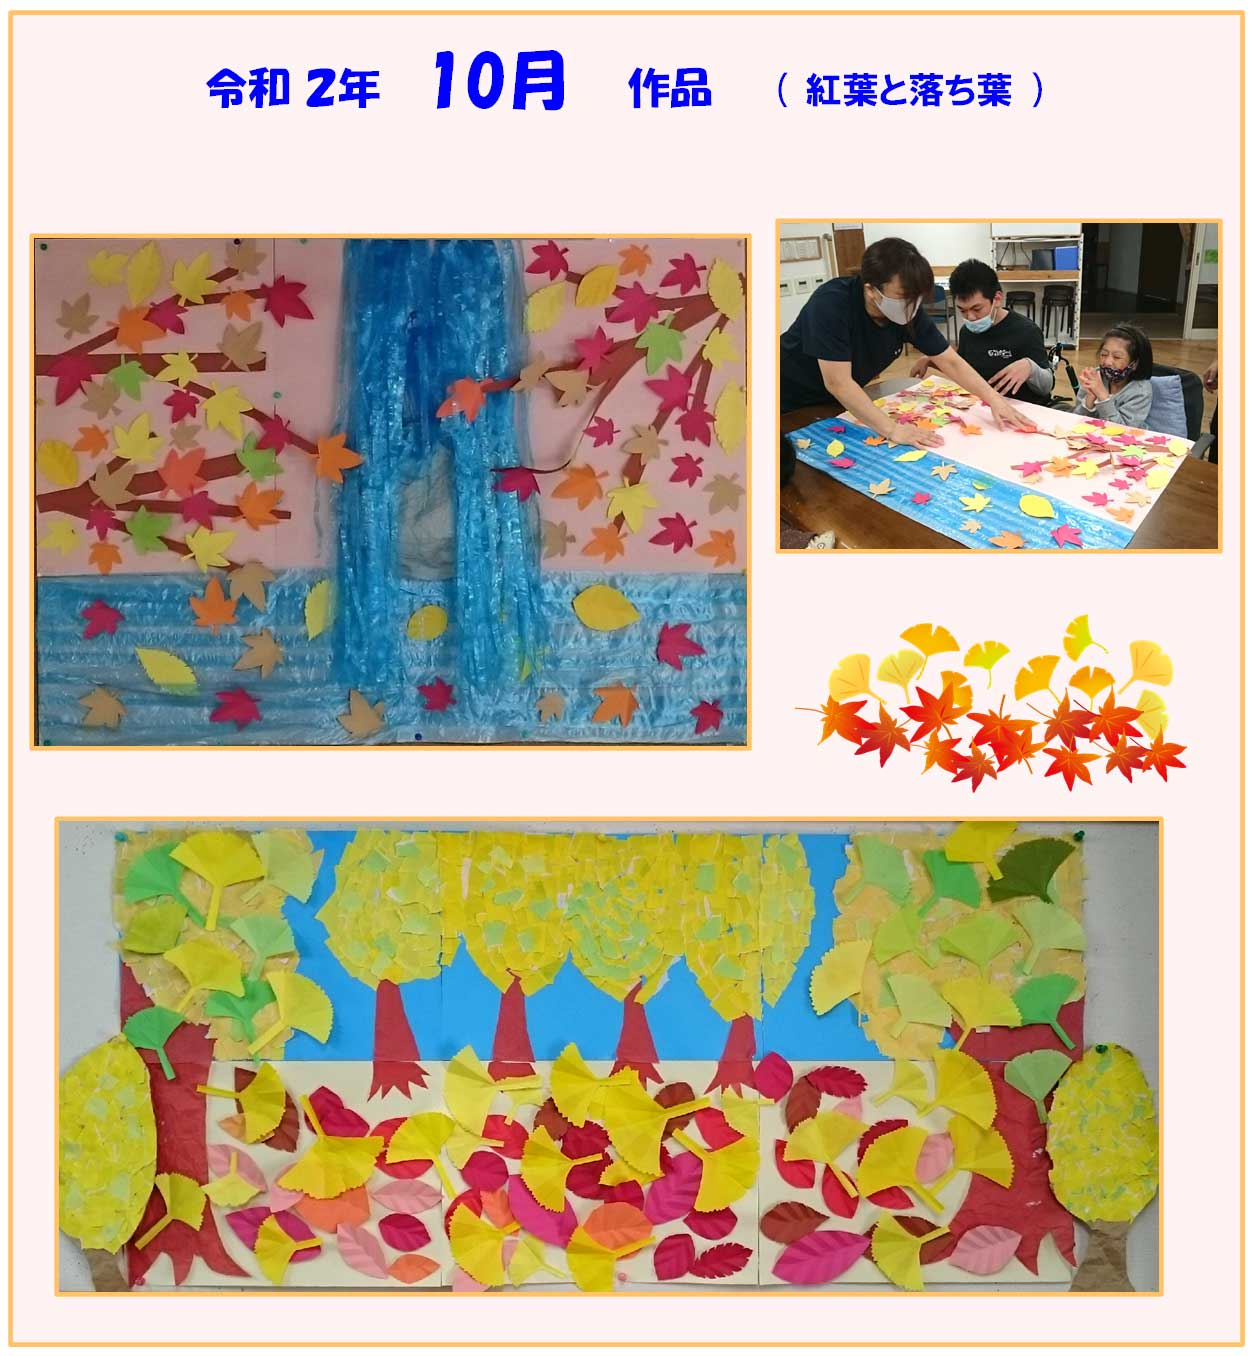 R02.10月 作品 紅葉と落ち葉